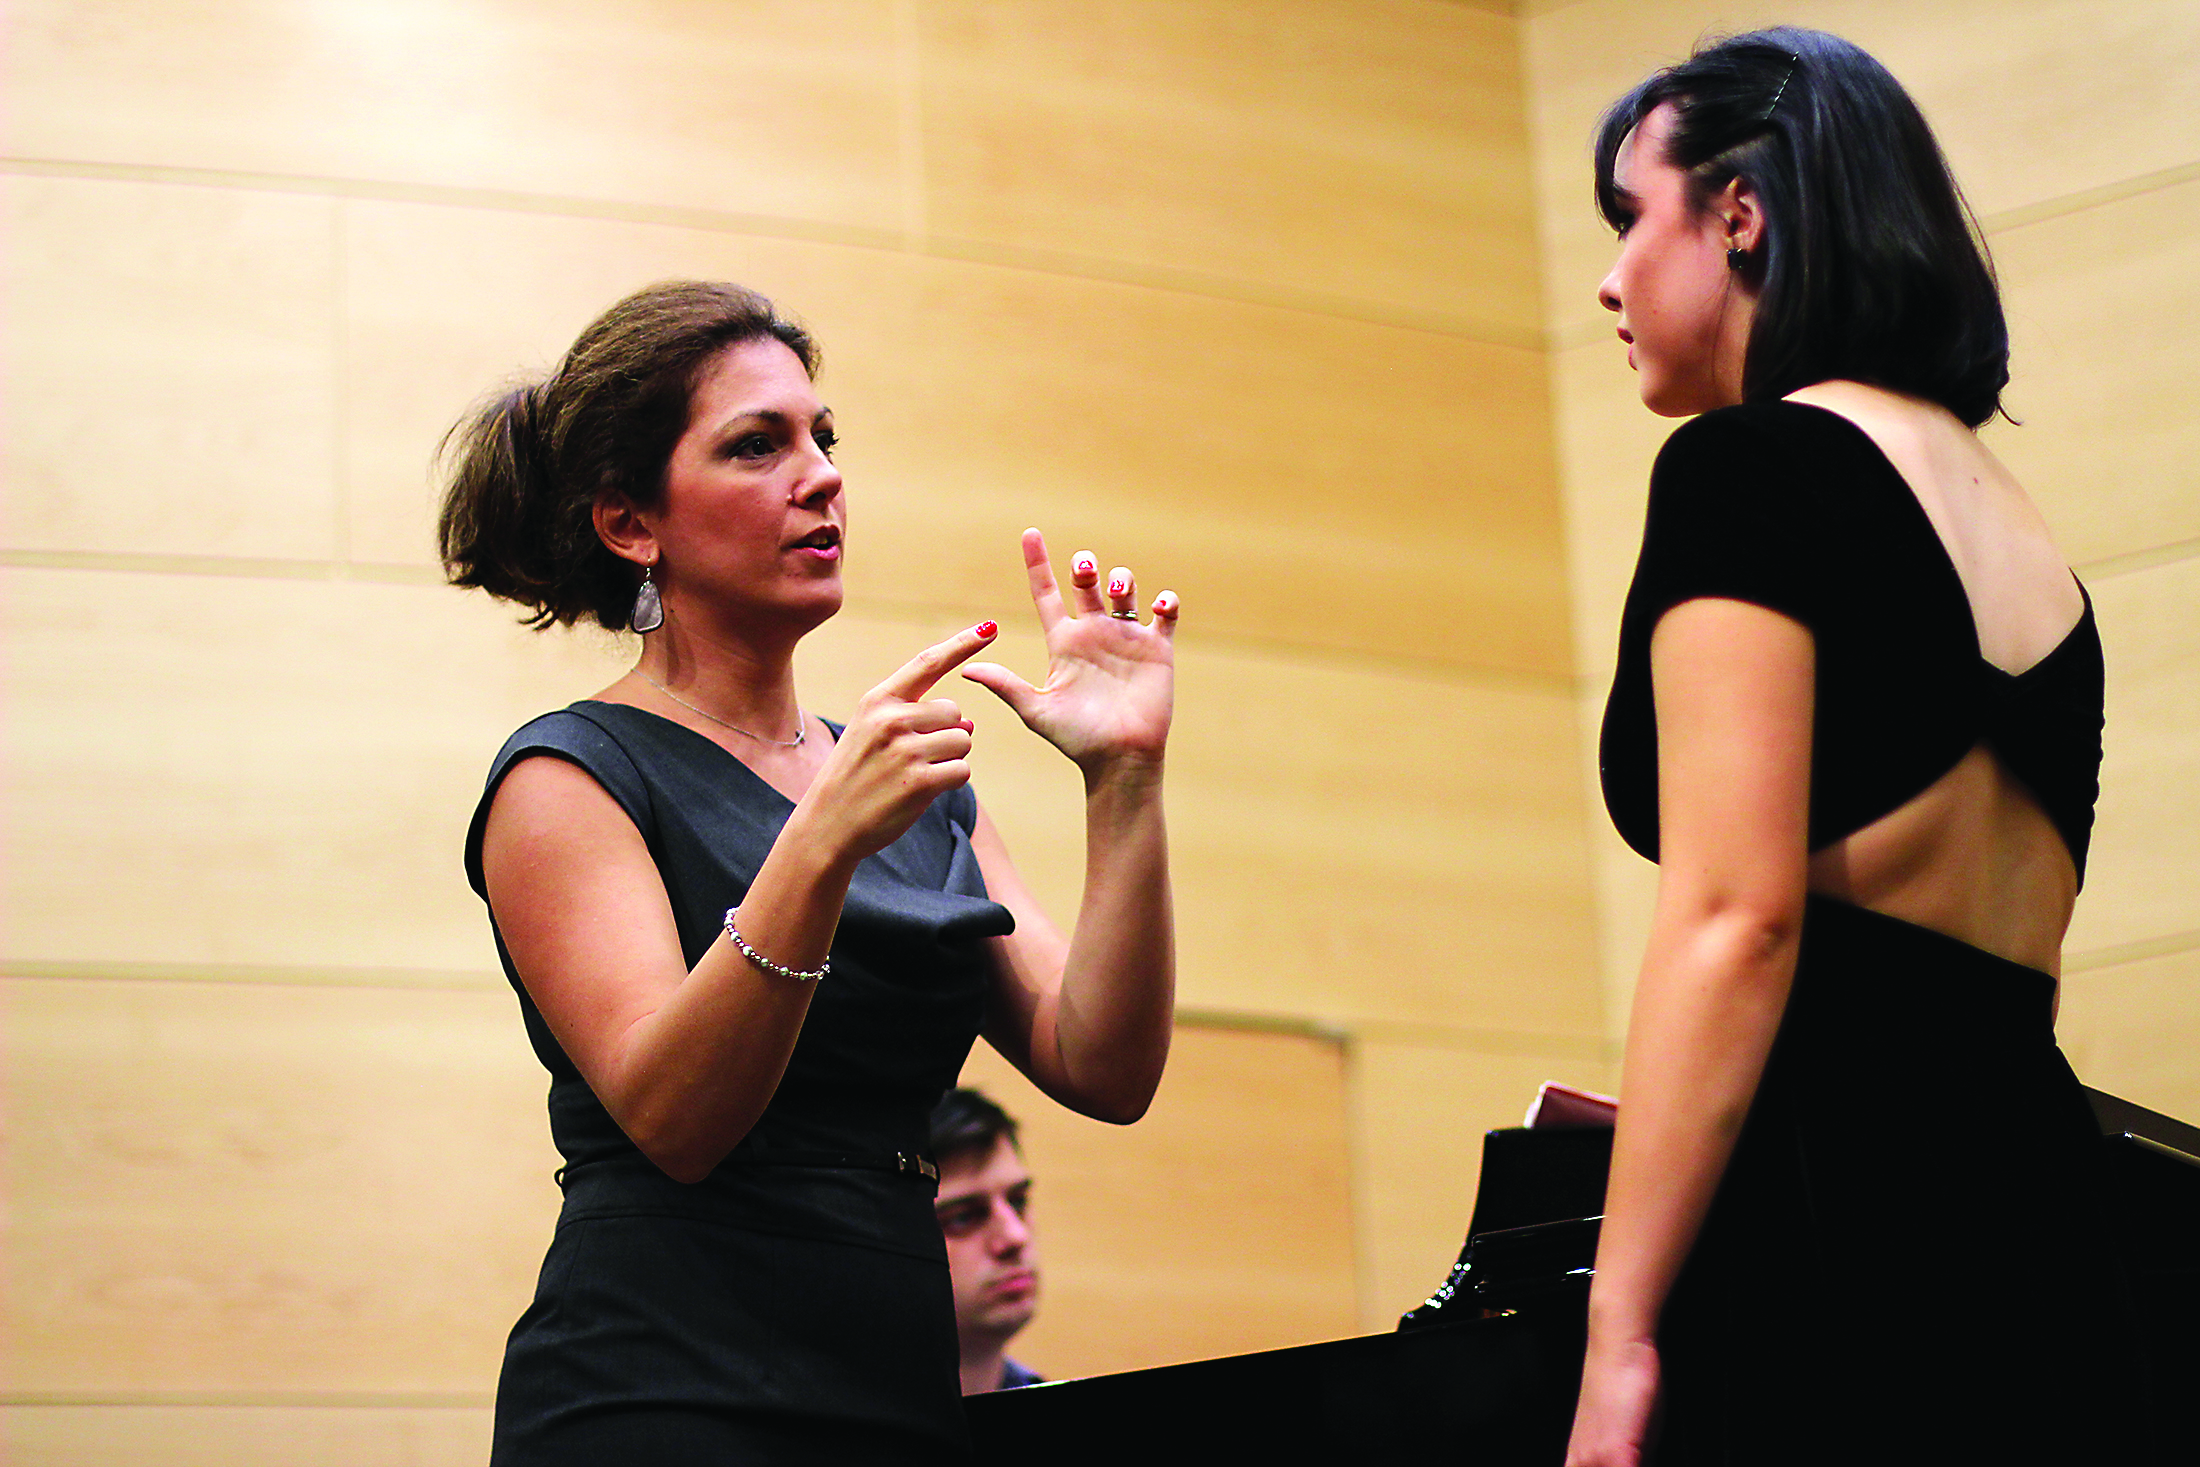 In her master class inside Nunemaker Hall, Irini Kyriakidou instructs vocal performance junior Emilie Tolley in performing her operatic arias. Kyriakidou covered how to arrive at more clear vocals to achieve a preciser sound. Photo credit: Tasja Demel